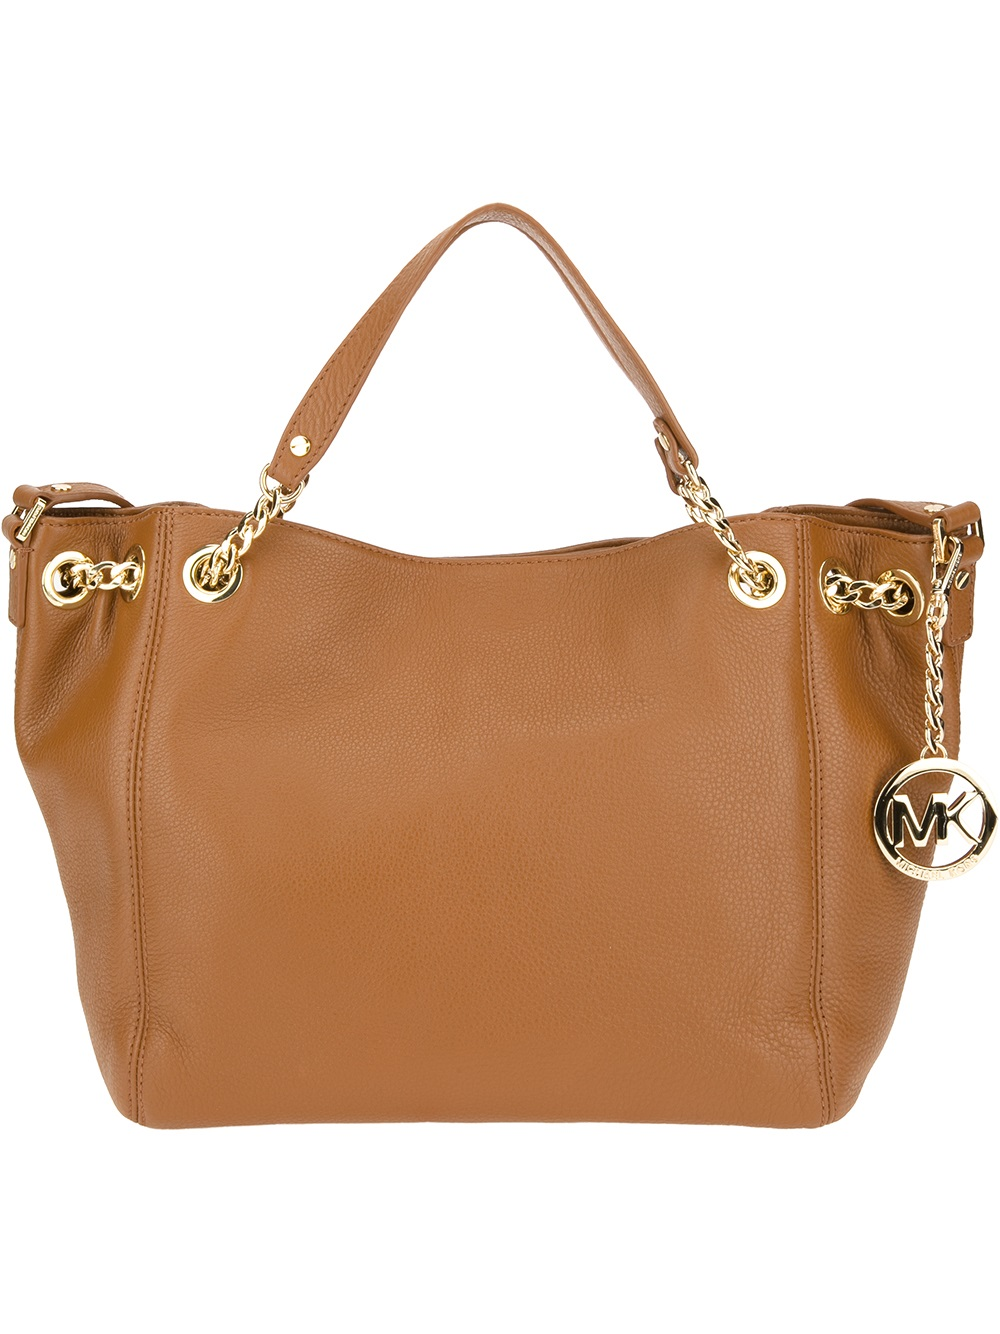 2019 year looks- Kors Michael bags black and brown pictures